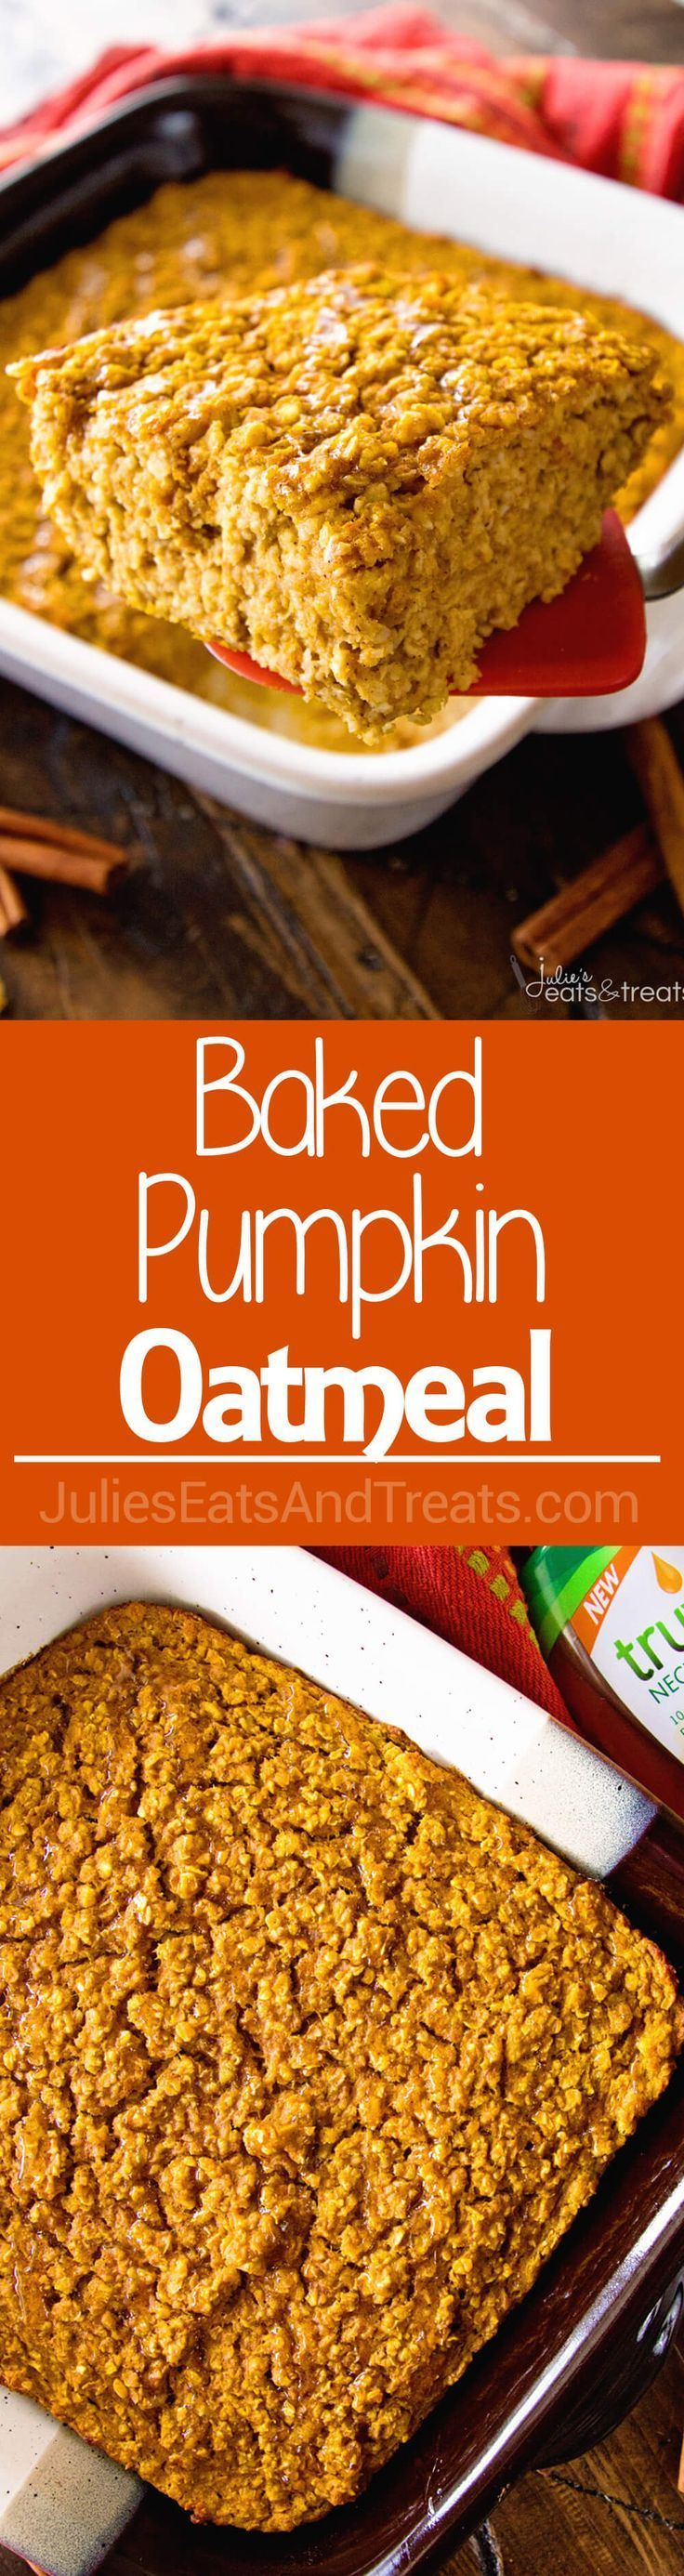 Baked Pumpkin Oatmeal ~ This Easy, Make-Ahead Baked Oatmeal is the Perfect Breakfast for Busy Mornings! Filled with Pumpkin, Oats and Spices to Fill You Up! via /julieseats/ (Halloween Bake Pumpkin)